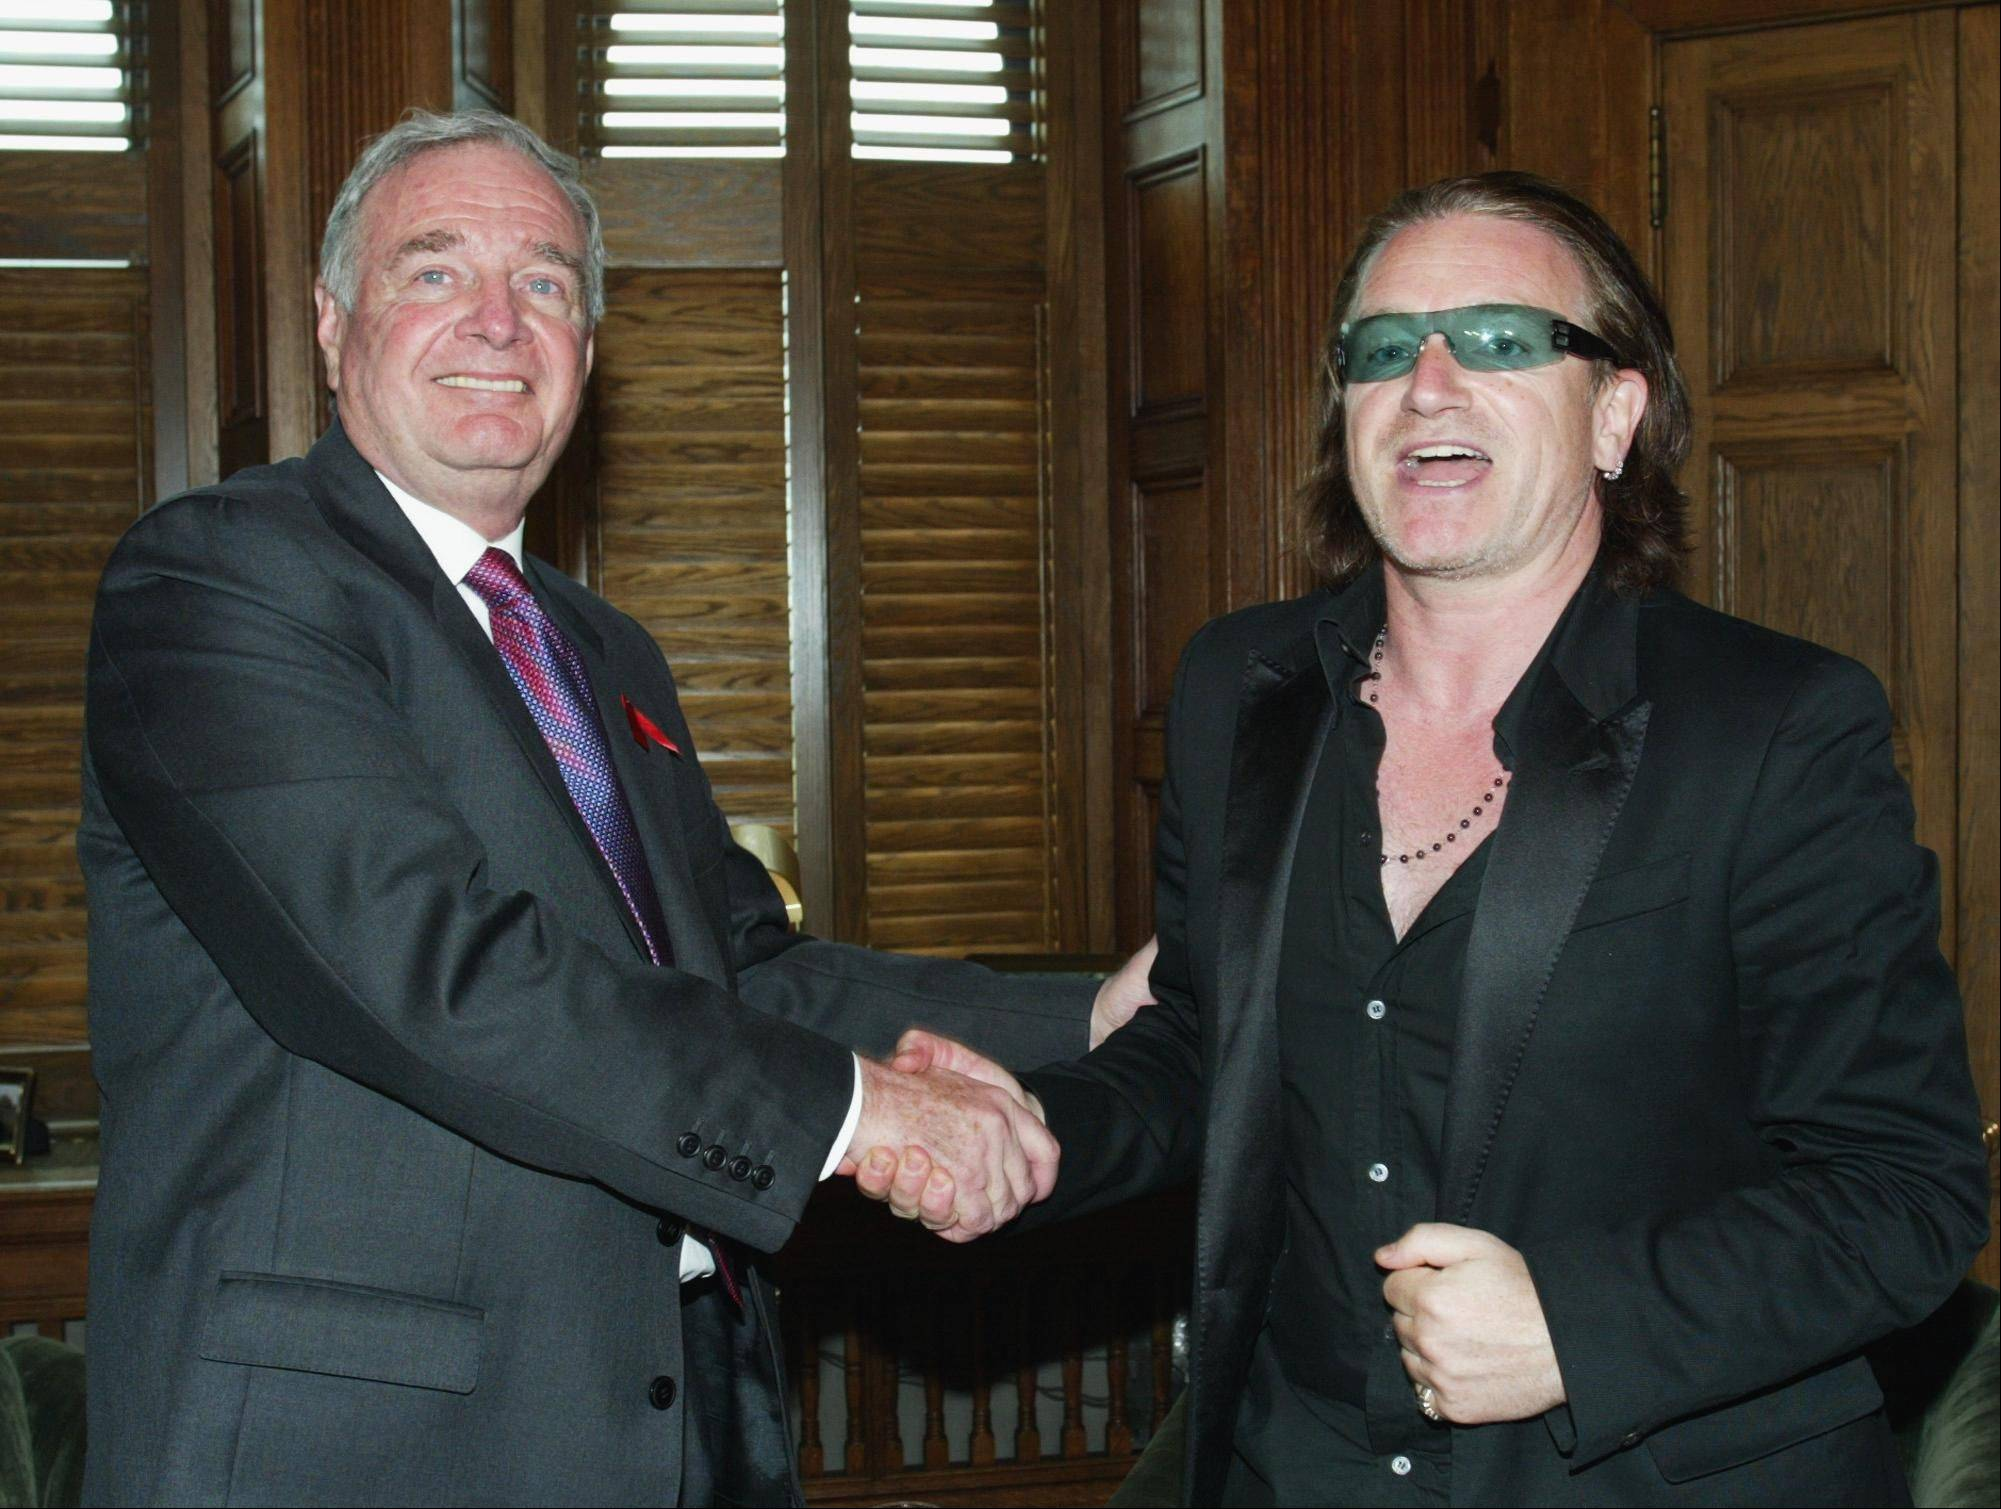 Canadian Prime Minister Paul Martin, left, shakes hands with U2 lead singer Bono on Parliament Hill in Ottawa Wednesday, May 12, 2004.